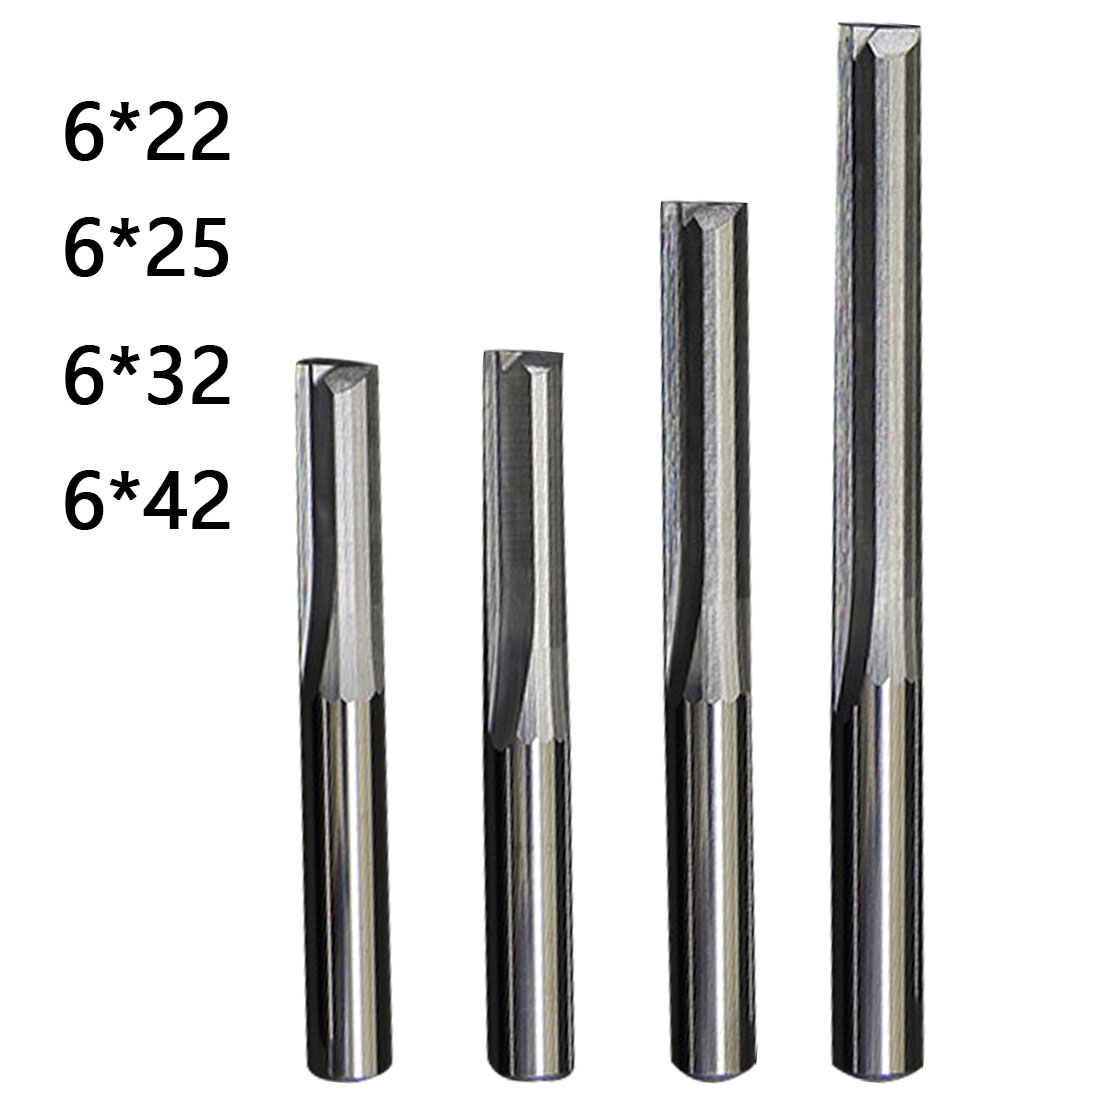 Milling Cutter 1pc 6mm/4mm Shank Two Flutes Straight Router Bits for Wood CNC Straight Engraving Cutters End Mill Tools long tool life 4 flutes milling tools roughing end mill cutter rough cutter 3mm 4mm 6mm 8mm 10mm 12mm 14mm 16mm cnc router bits